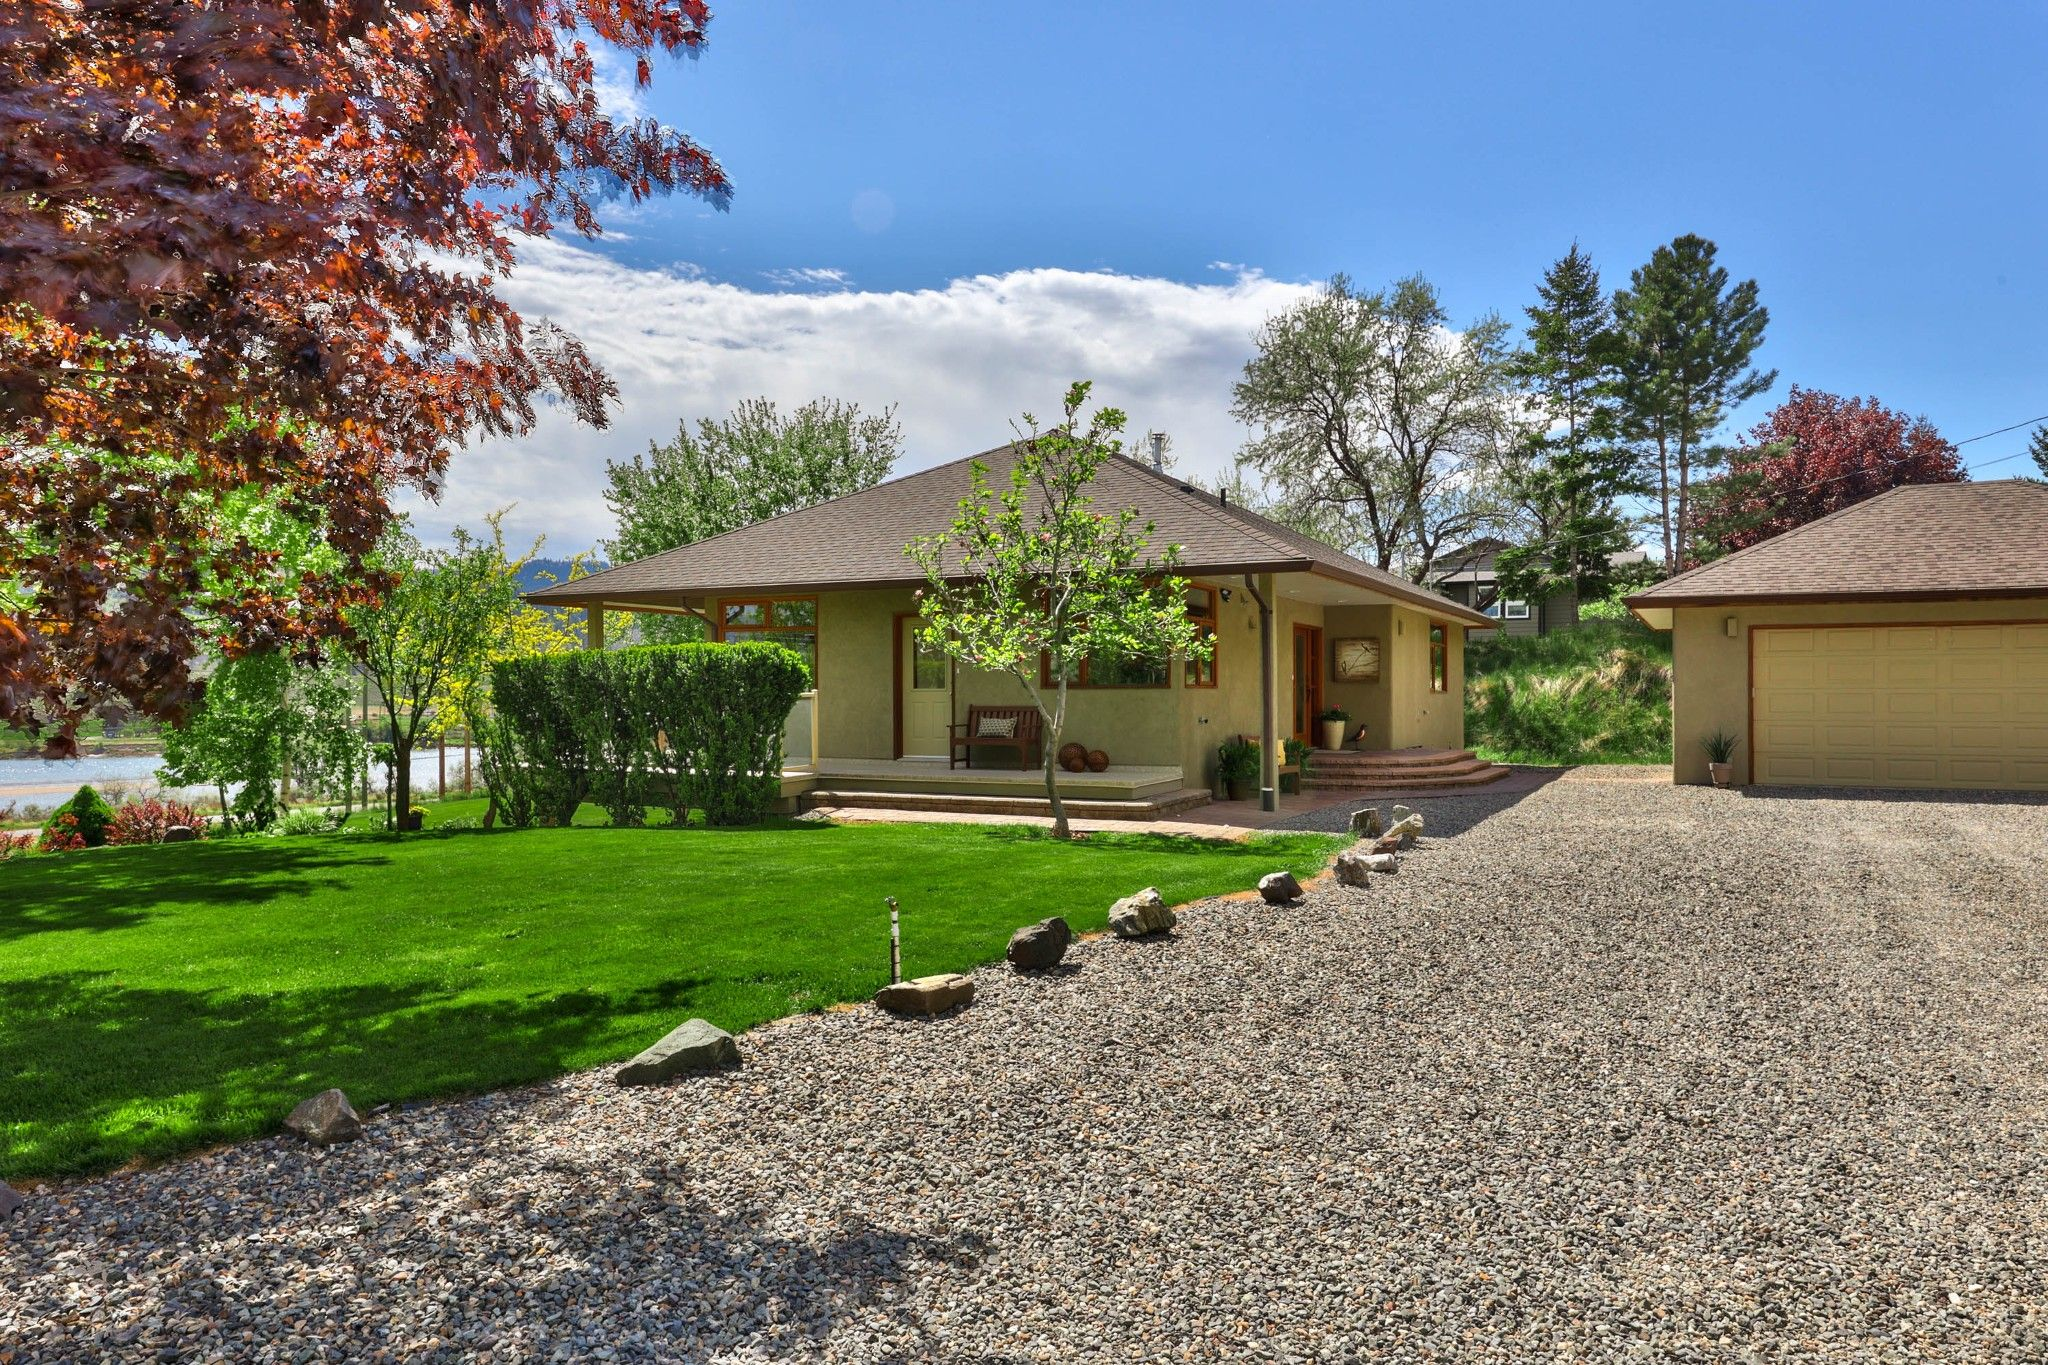 Photo 45: Photos: 3299 E Shuswap Road in Kamloops: South Thompson Valley House for sale : MLS®# 162162